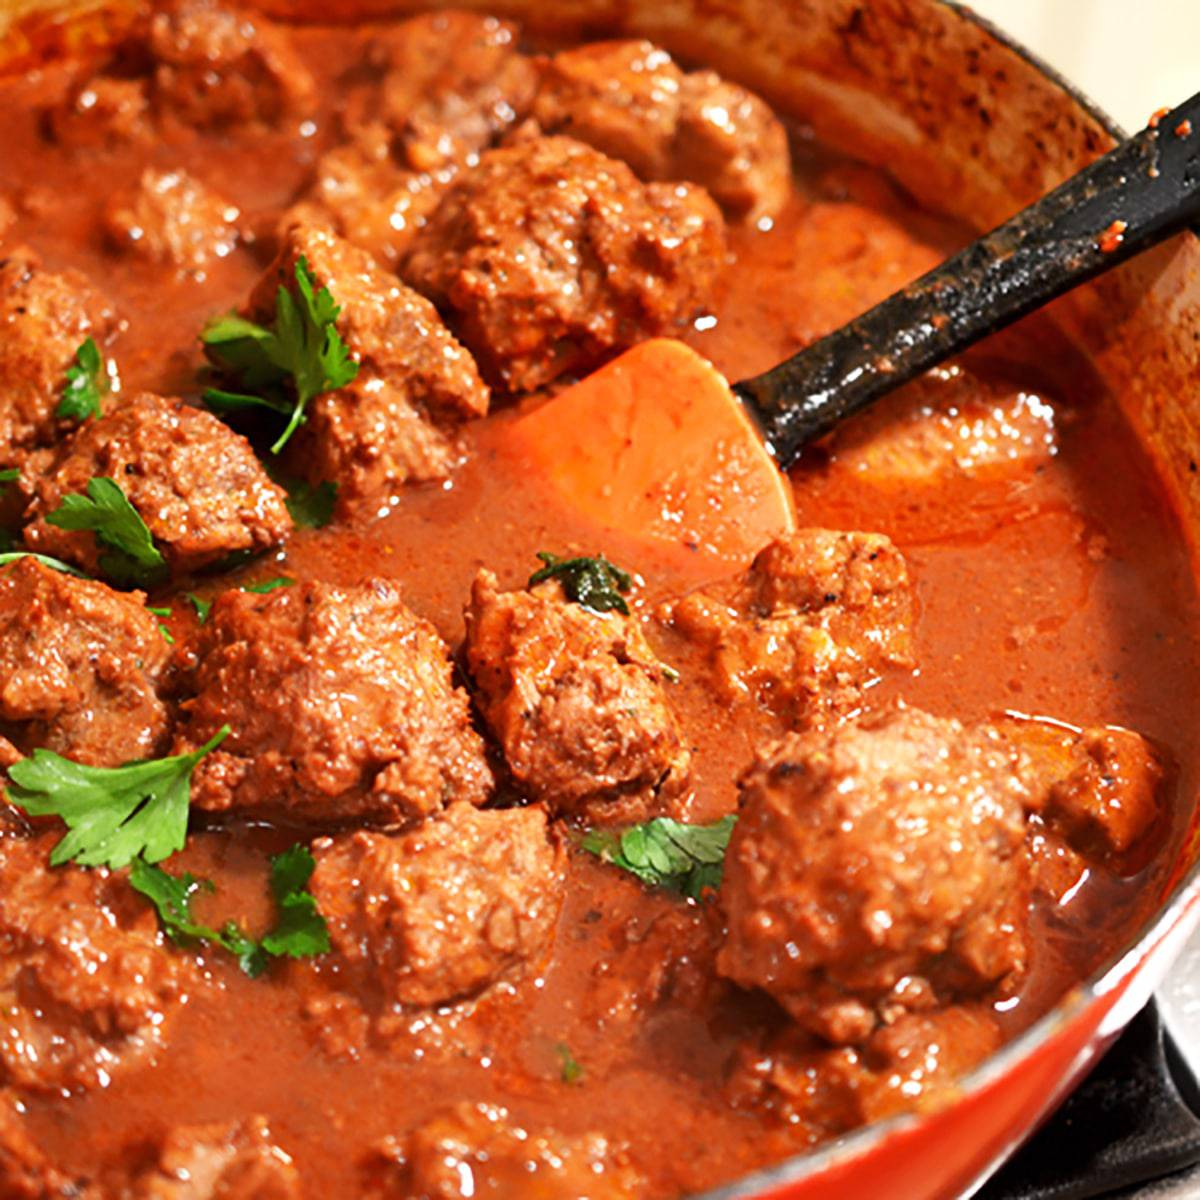 Pot of meatballs with red sauce